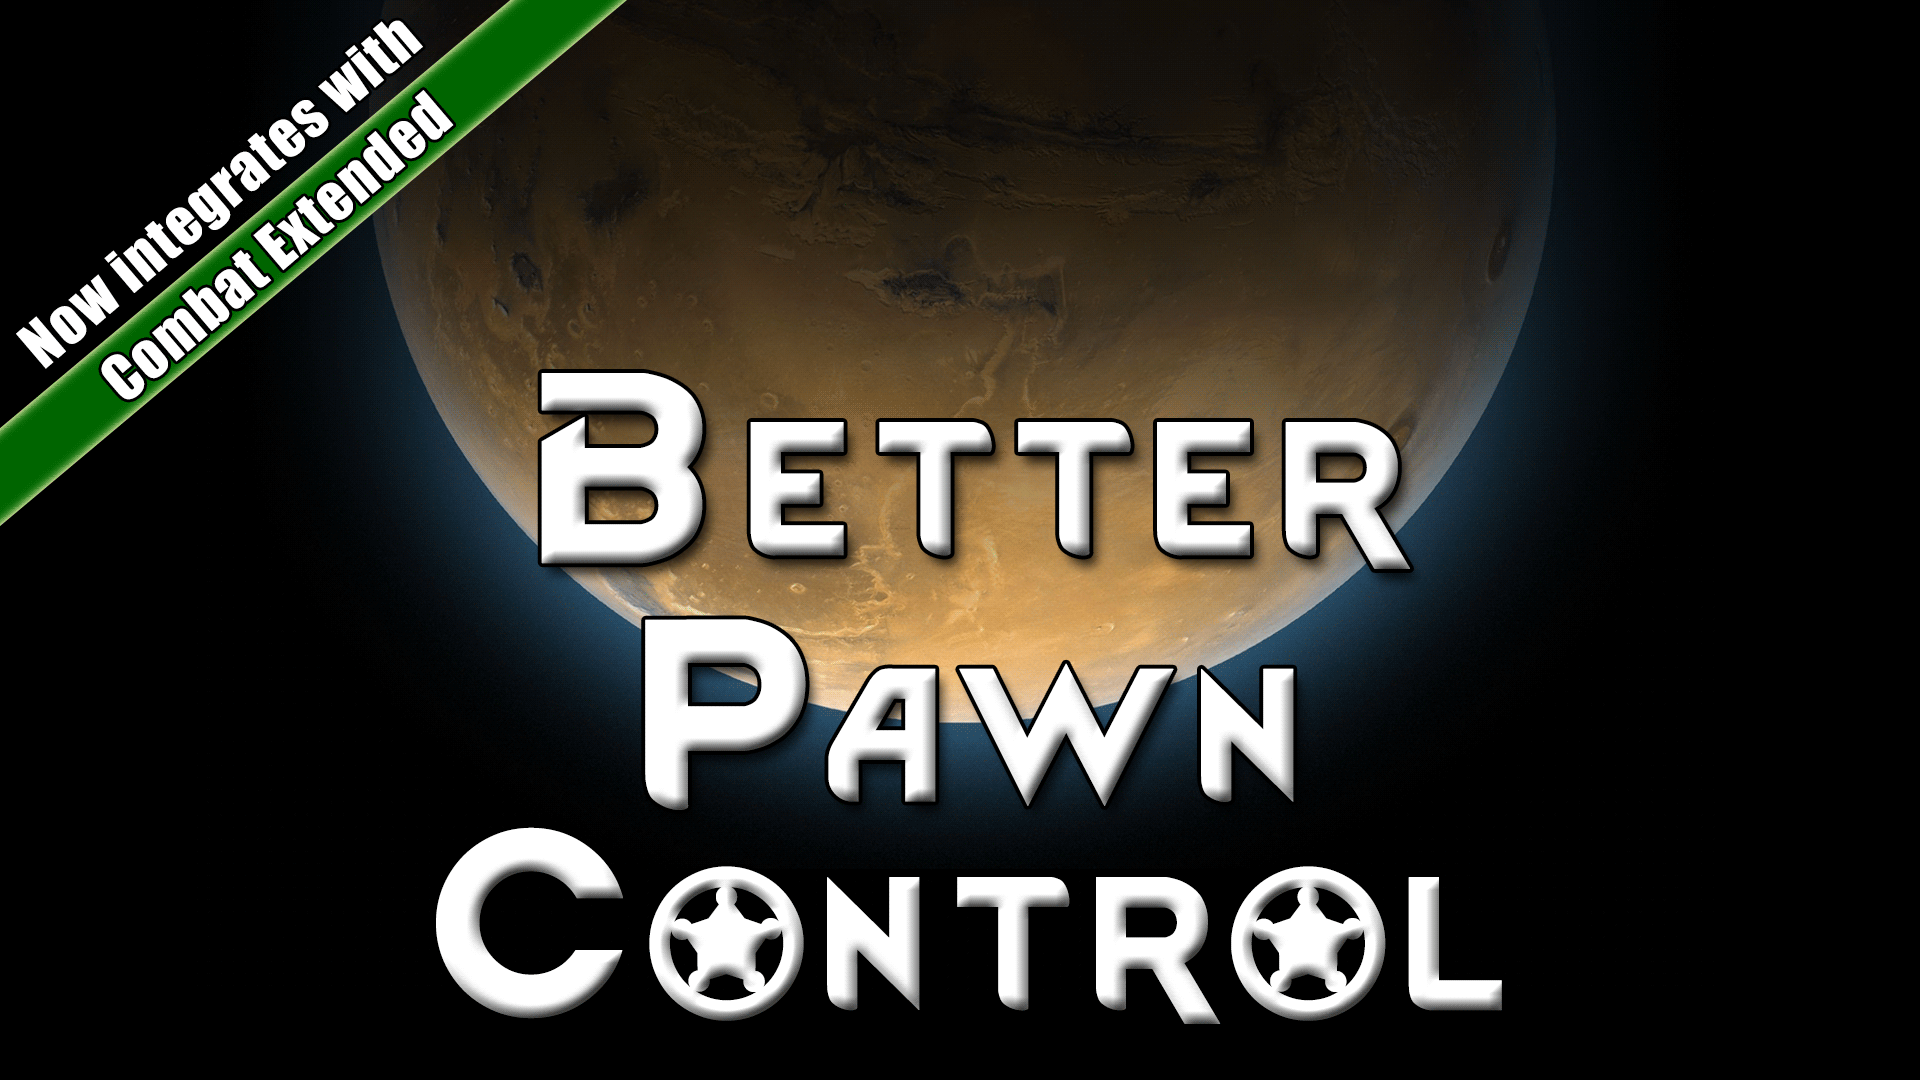 Better Pawn Control